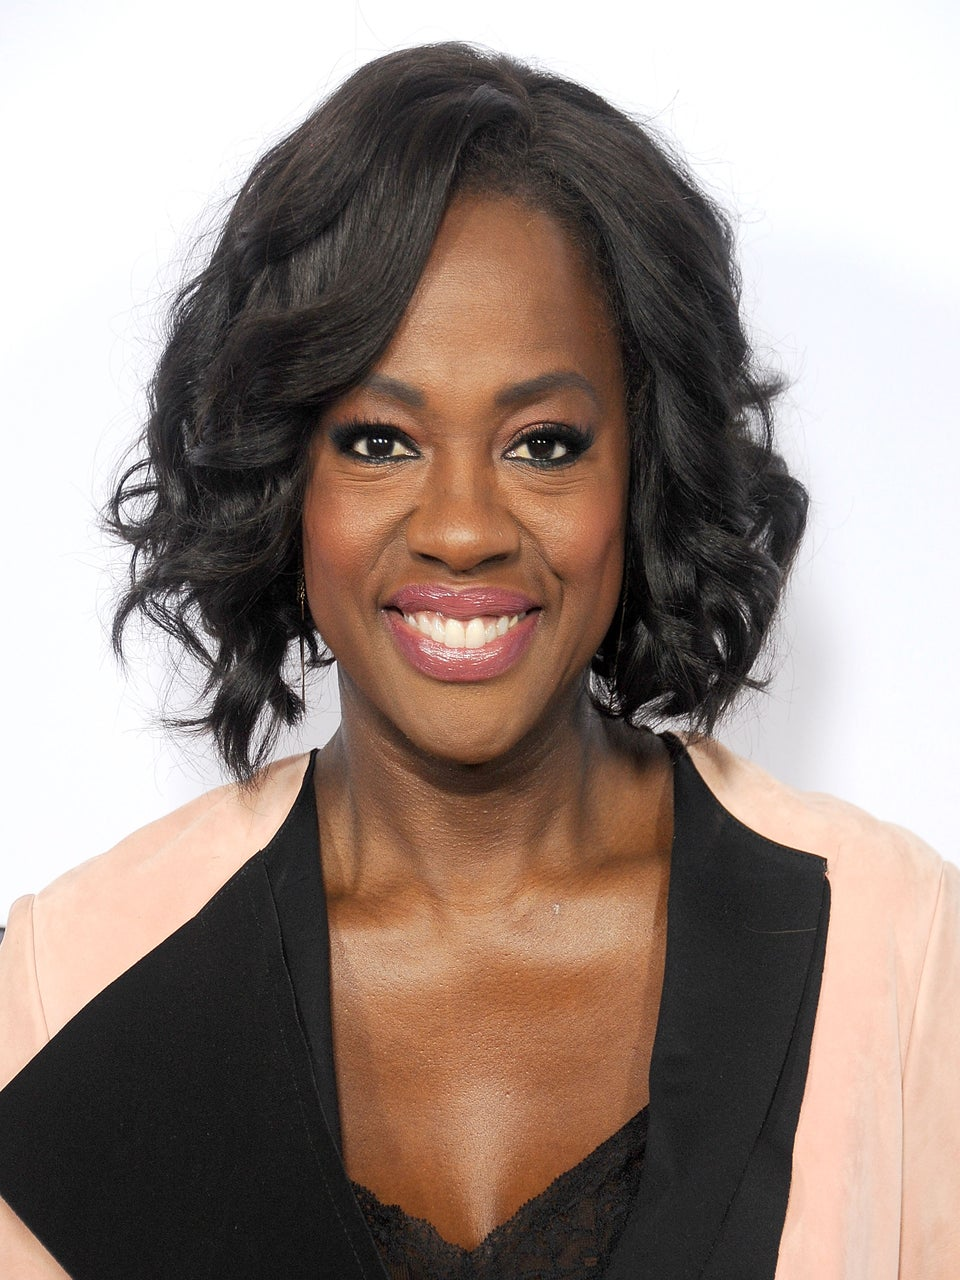 Viola Davis On Why She's Telling Her Daughter To Stop Apologizing: 'We Need To Step Into Our Power'